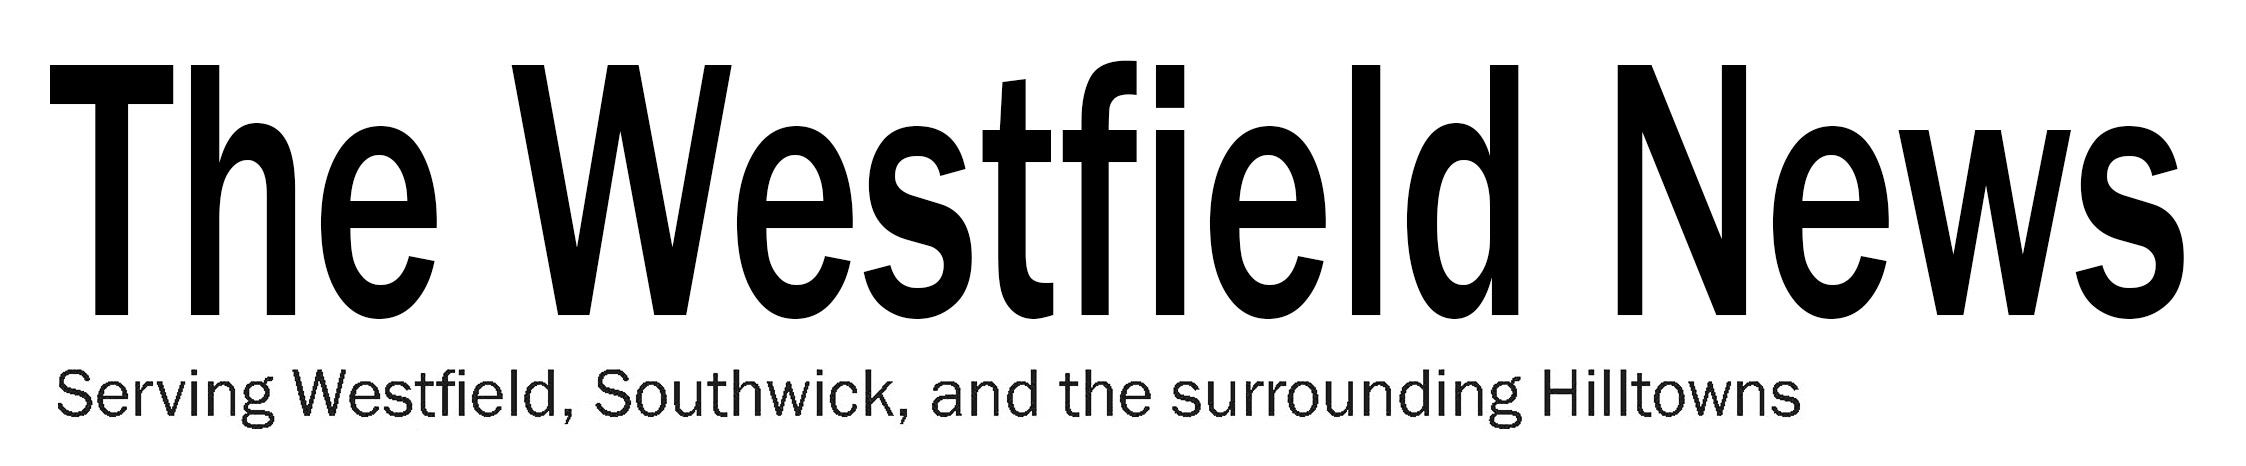 The-Westfield-News